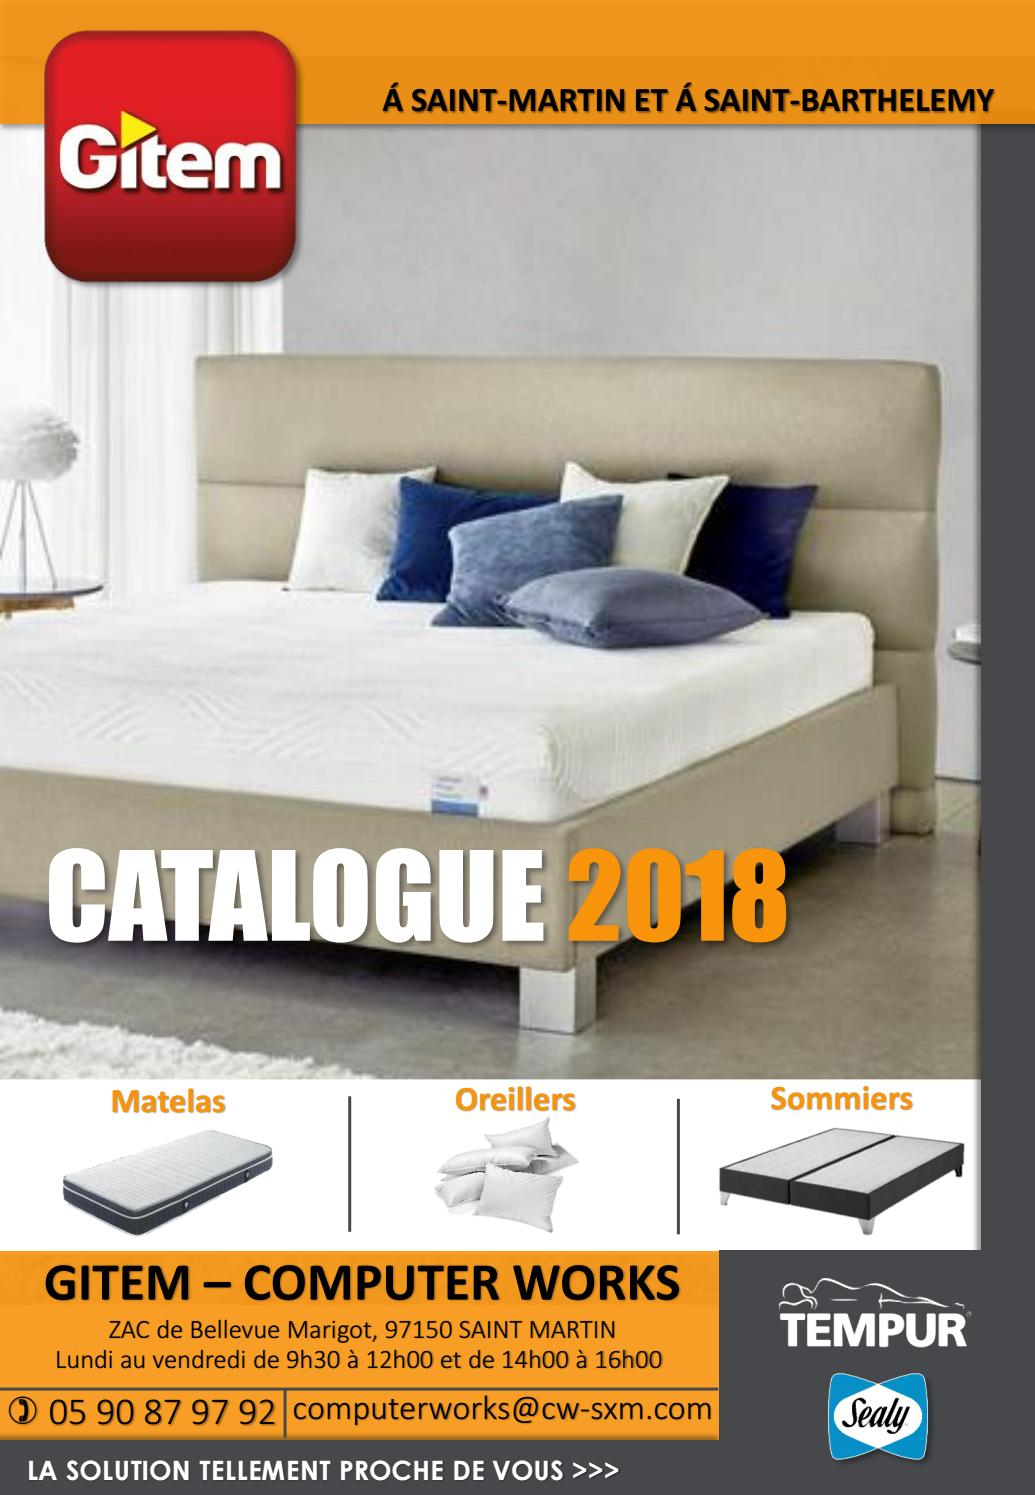 Matelas Tempur Original 21 160x200 Gitem Catalogue Literie 2018 By Gitem Euronics St Martin Issuu